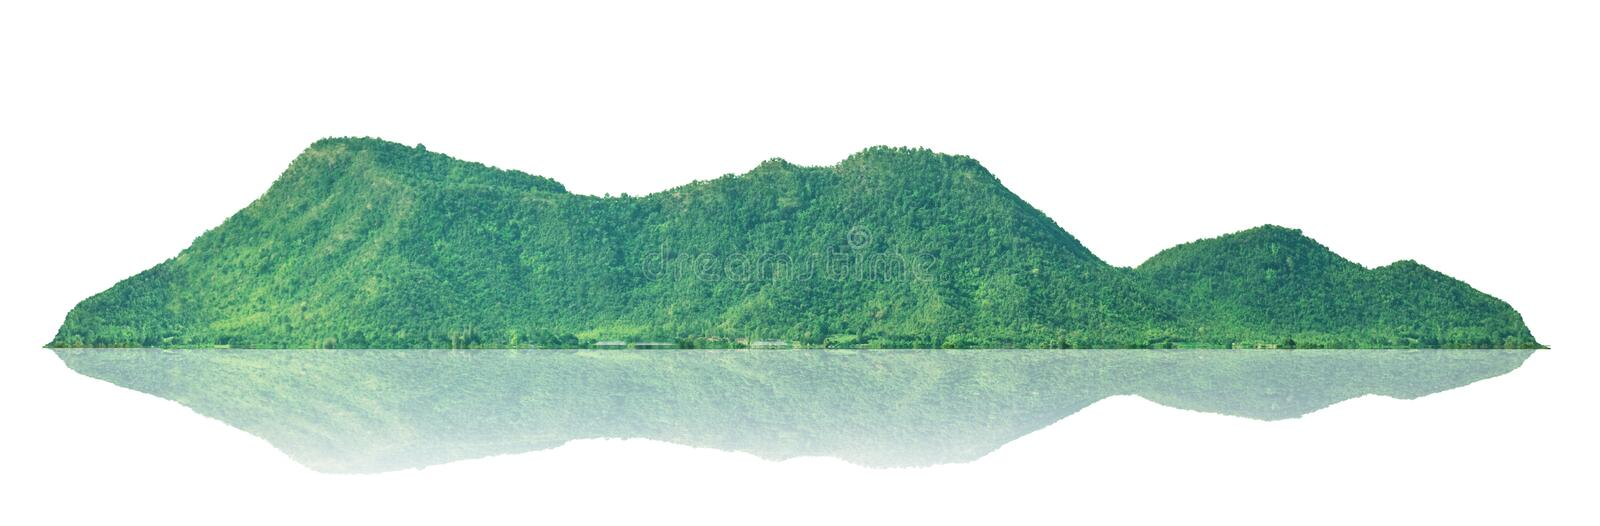 Mountain, isolated island on a white background with a trail. Background stock photography